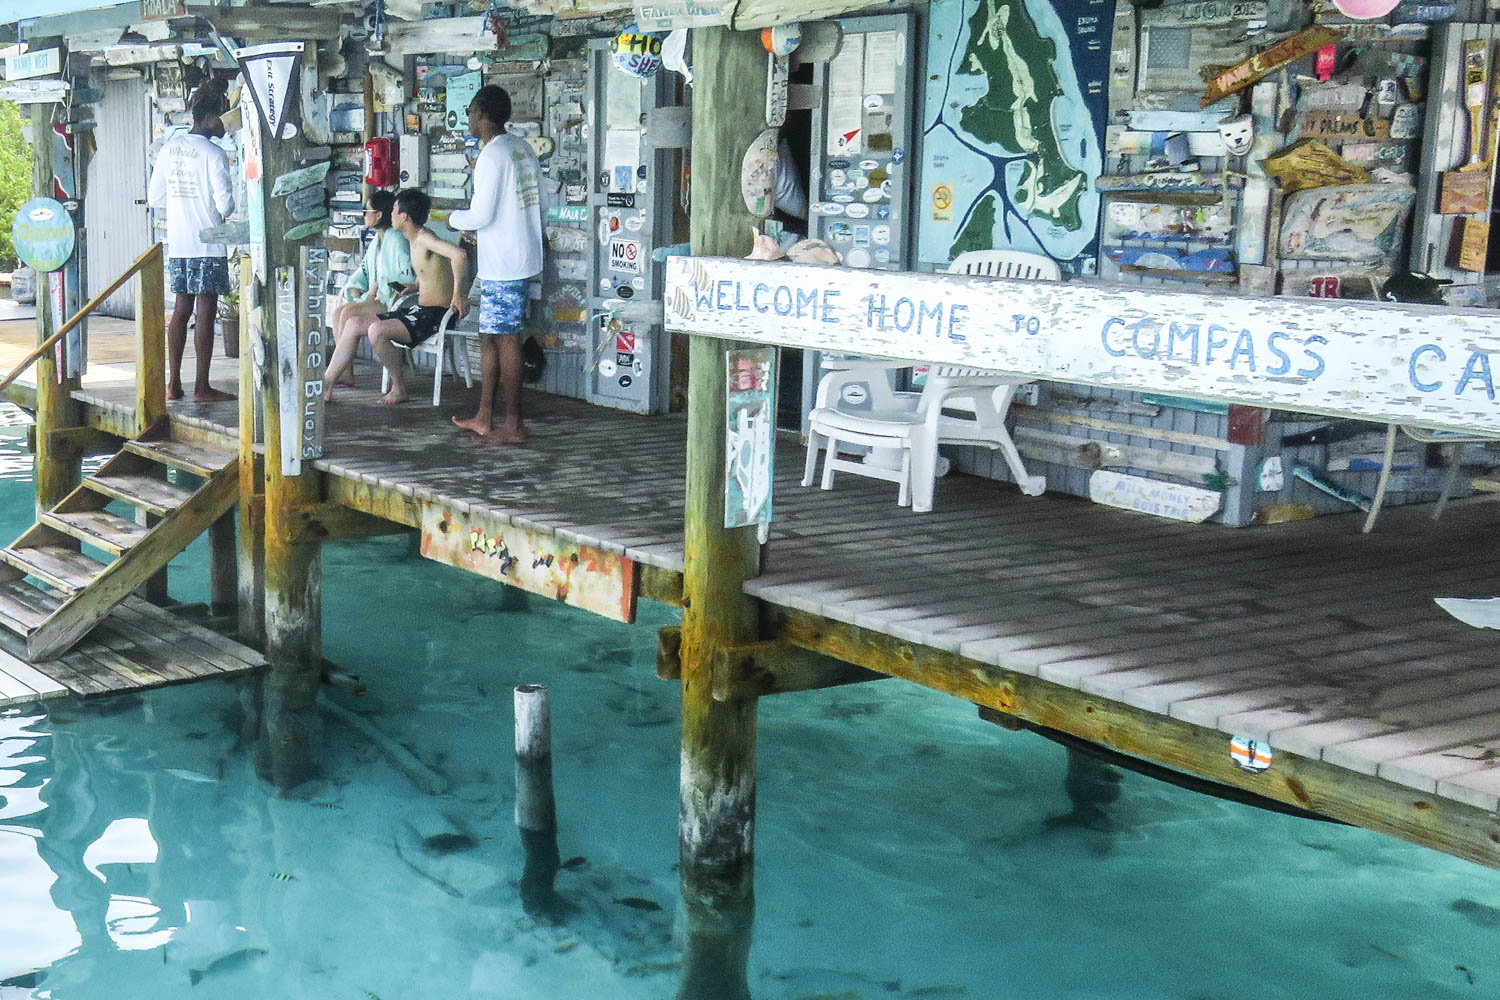 The Compass Cay sharks are used to human interaction. Bahamas sharks can be aggressive if treated wrong.